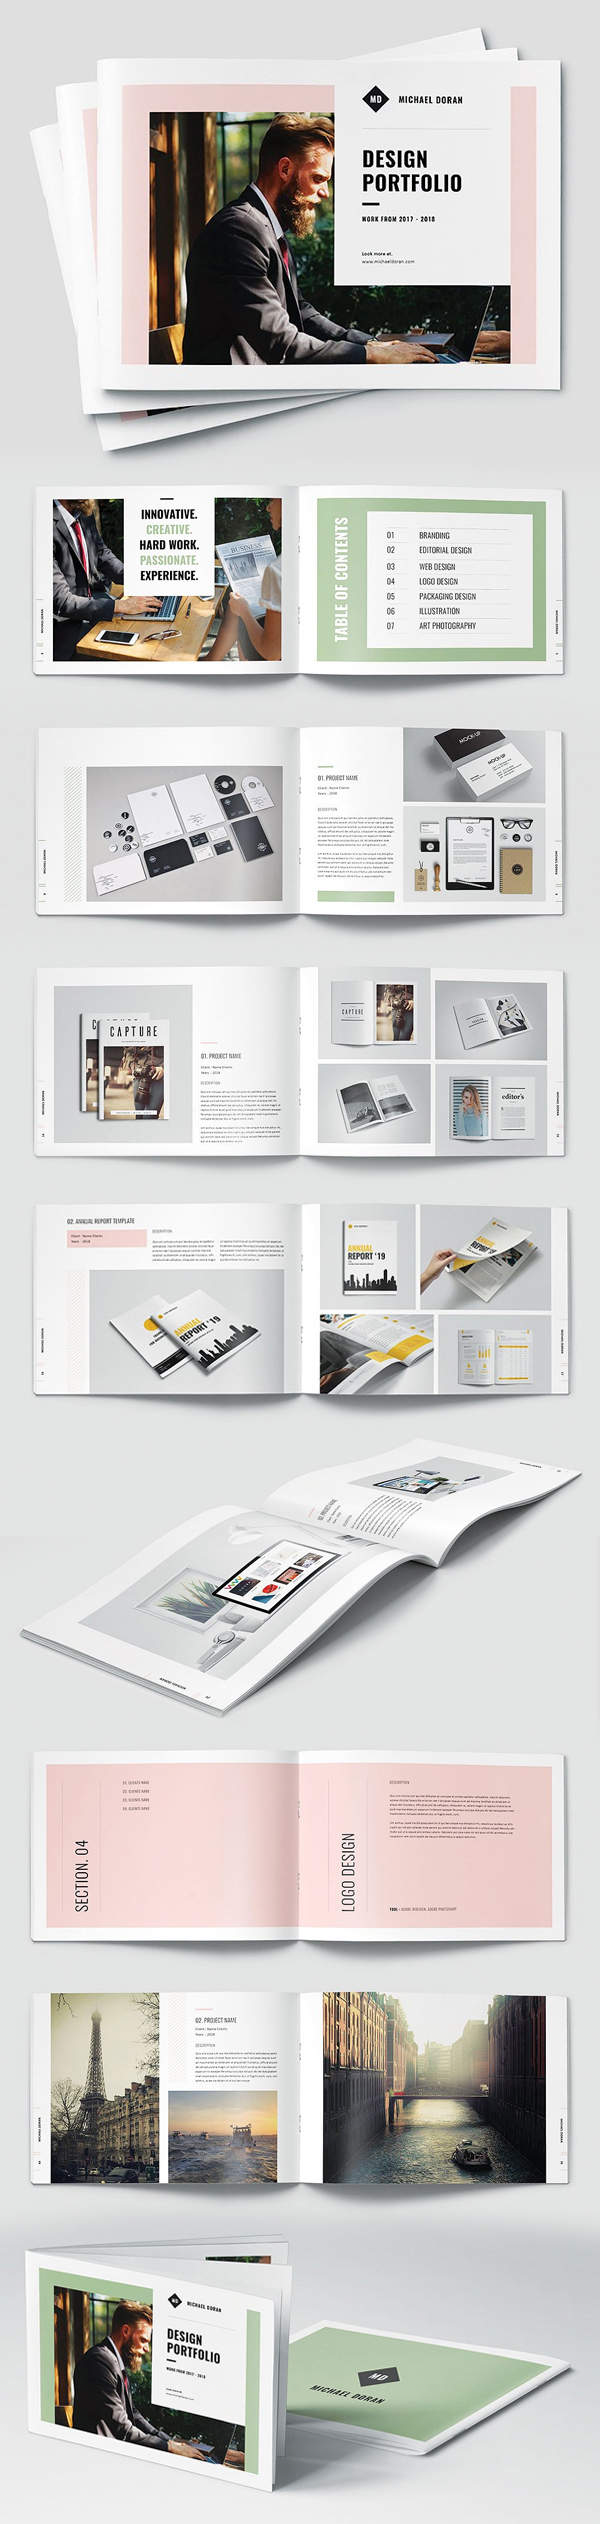 Graphic Design Portfolio Landscape Brochure Template